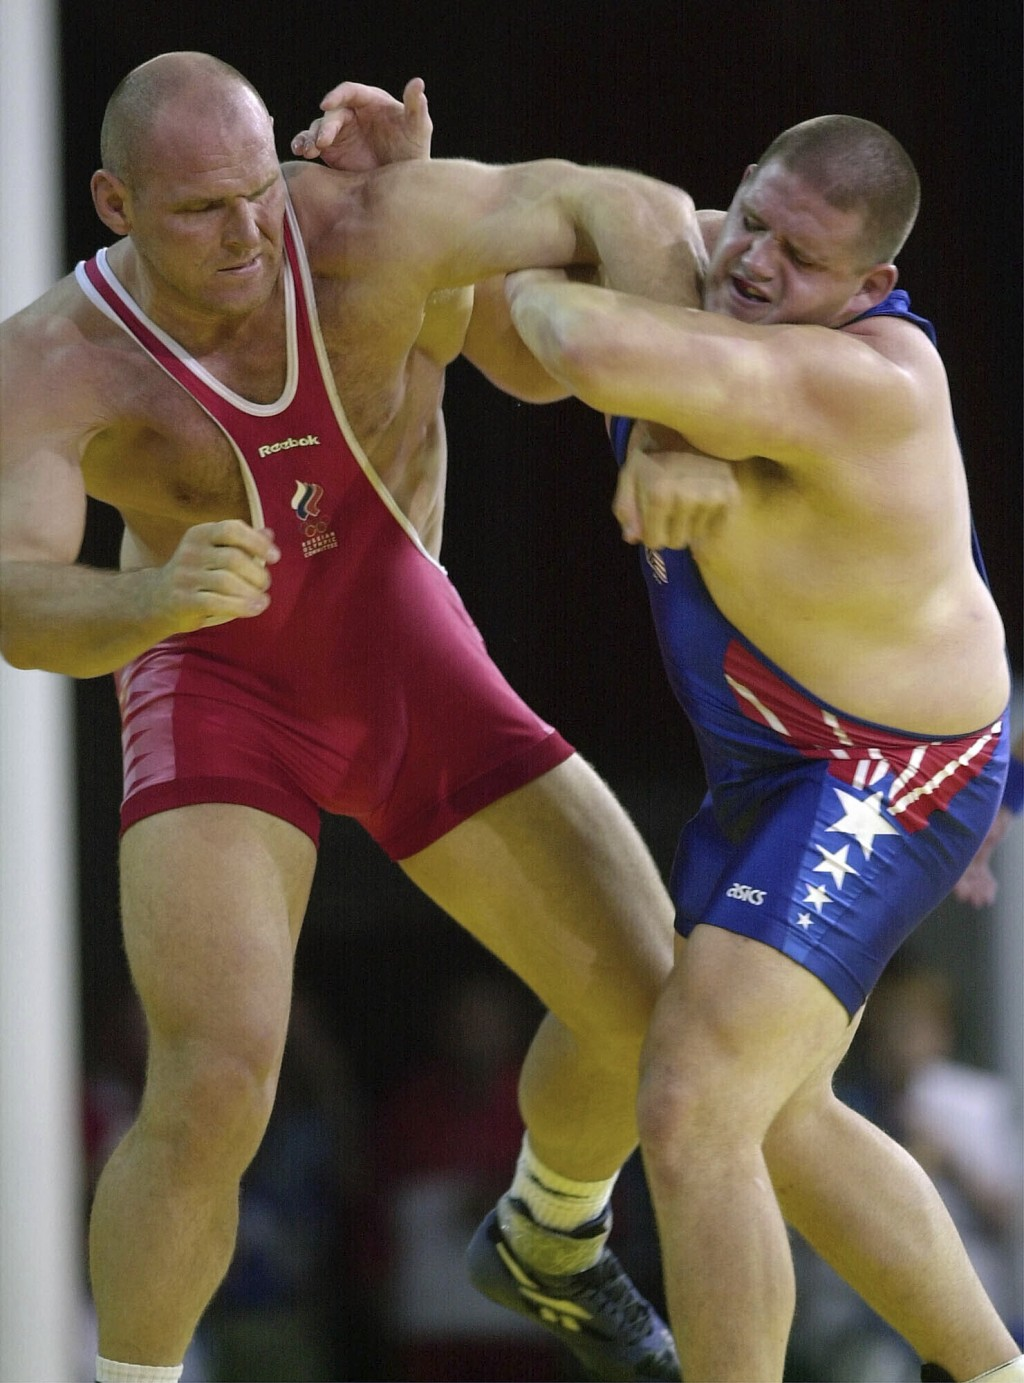 FILE - In this Sept. 27, 2000, file photo, Rulon Gardner, right, of the United States, holds the arm of Aleksandr Karelin, of Russia, during the final...